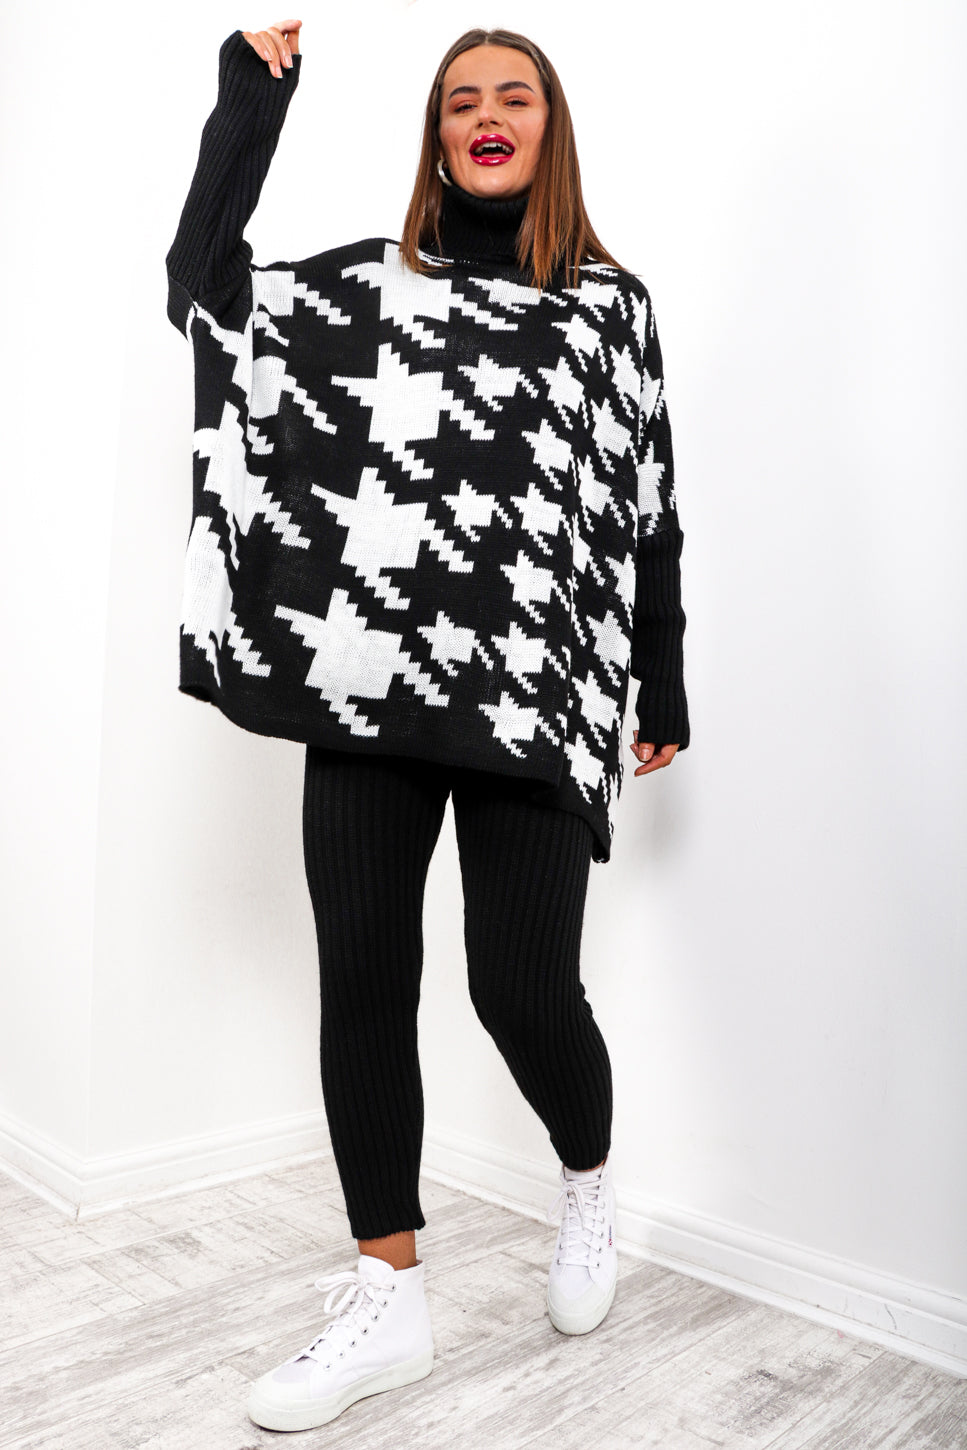 Pretty Chilled - Black Houndstooth Knitted Co-ord